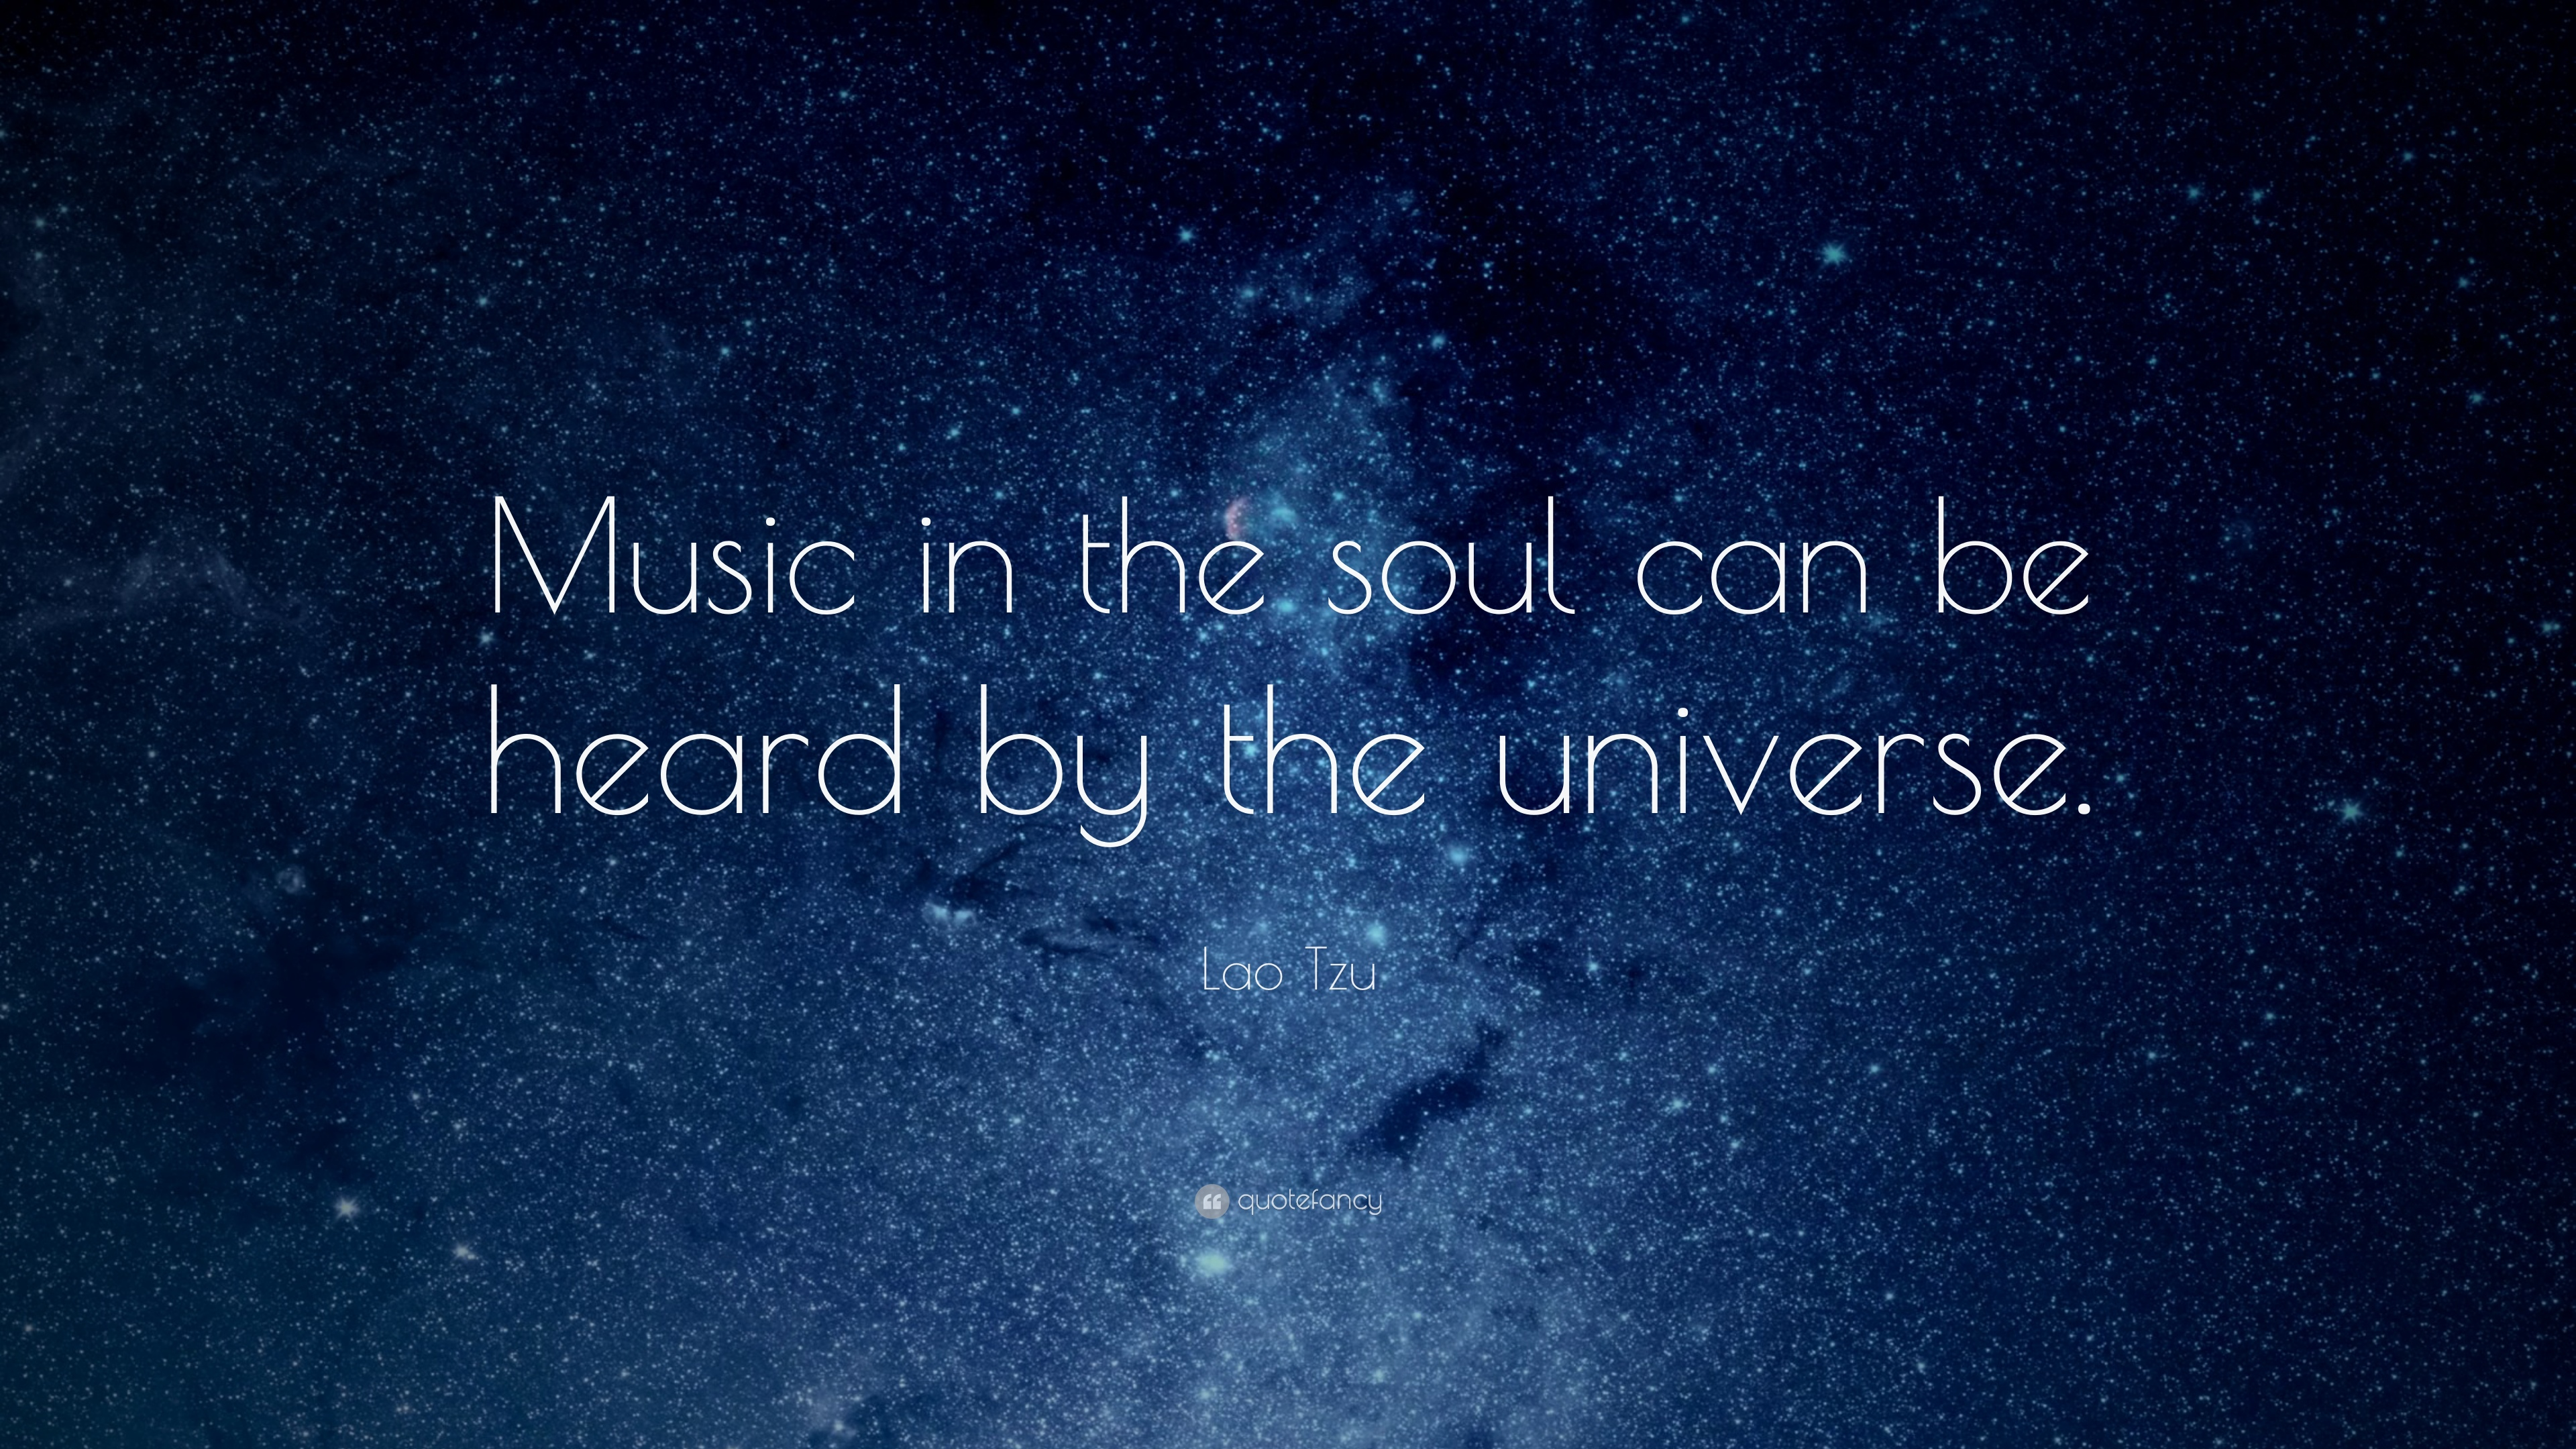 music quotes wallpapers - photo #3